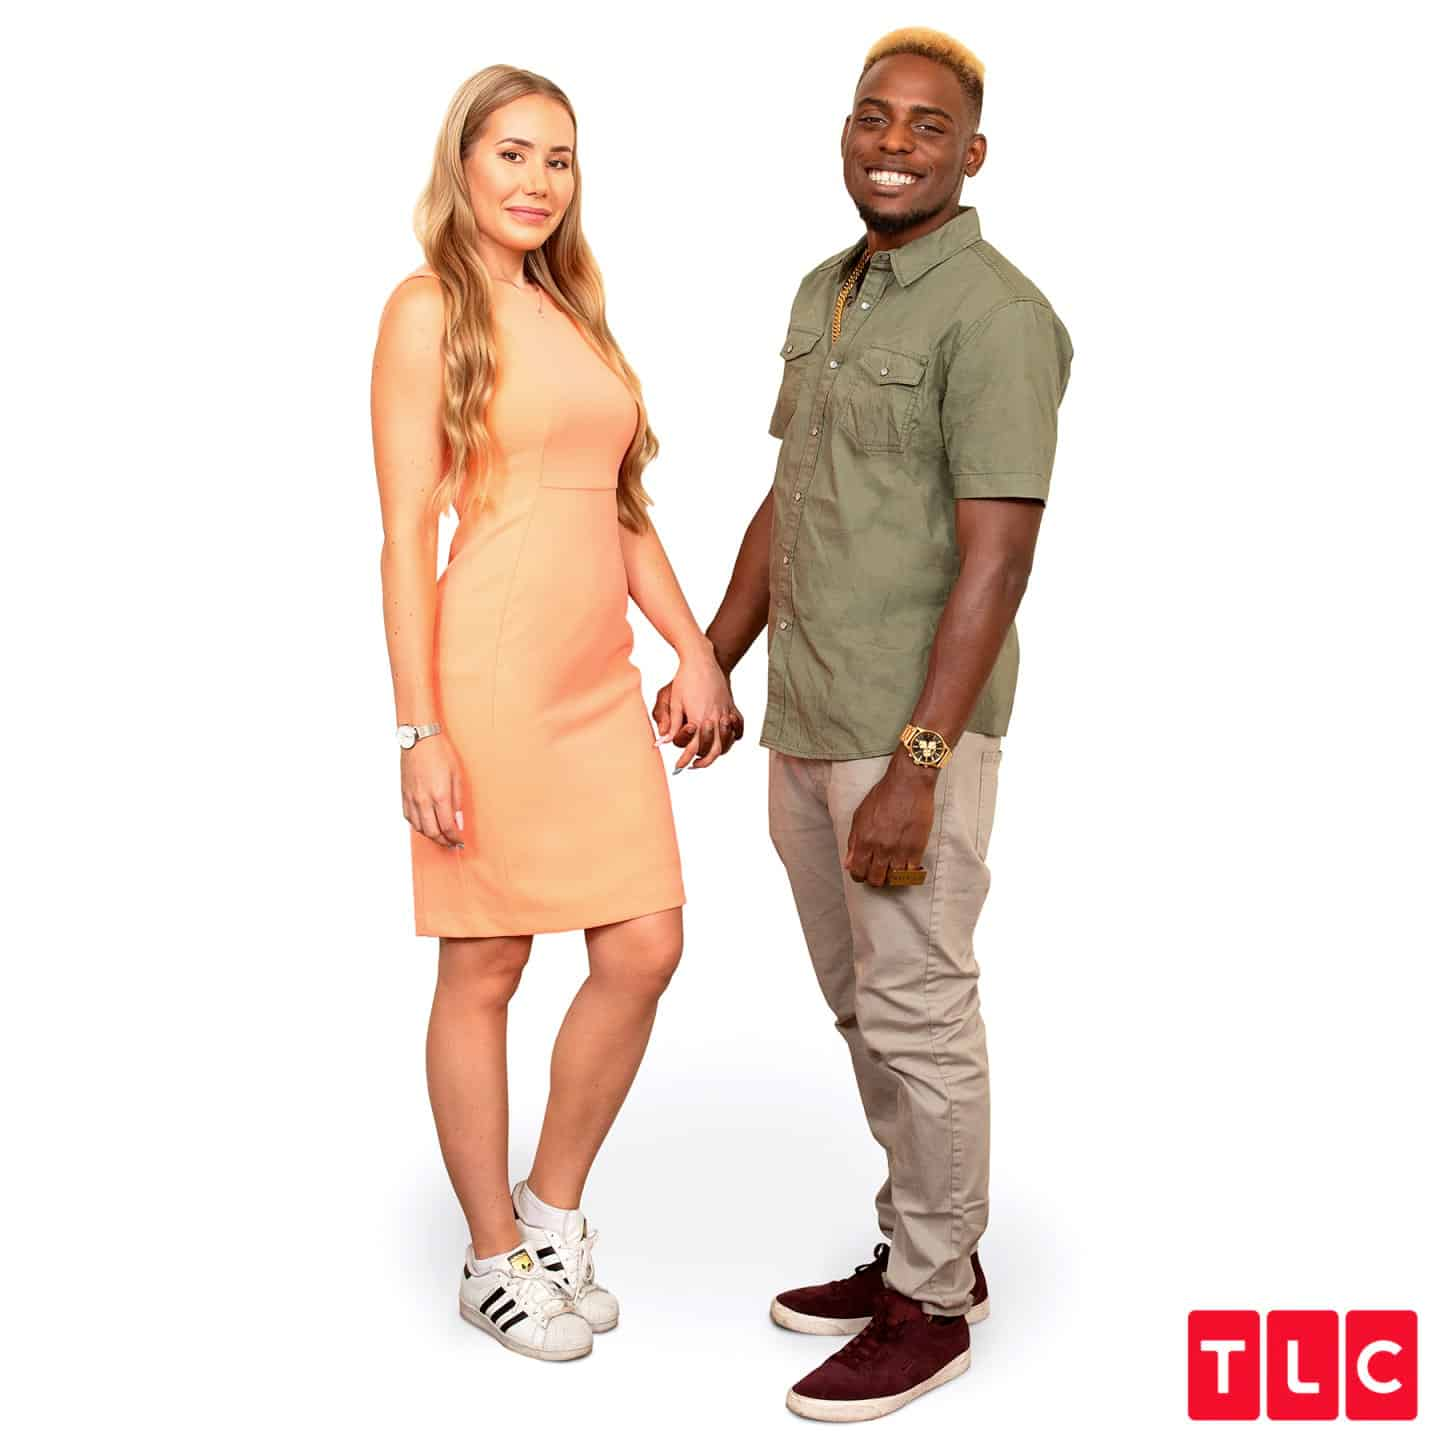 TLC 90 Day Fiance Season 7 Cast Jasmin and Blake